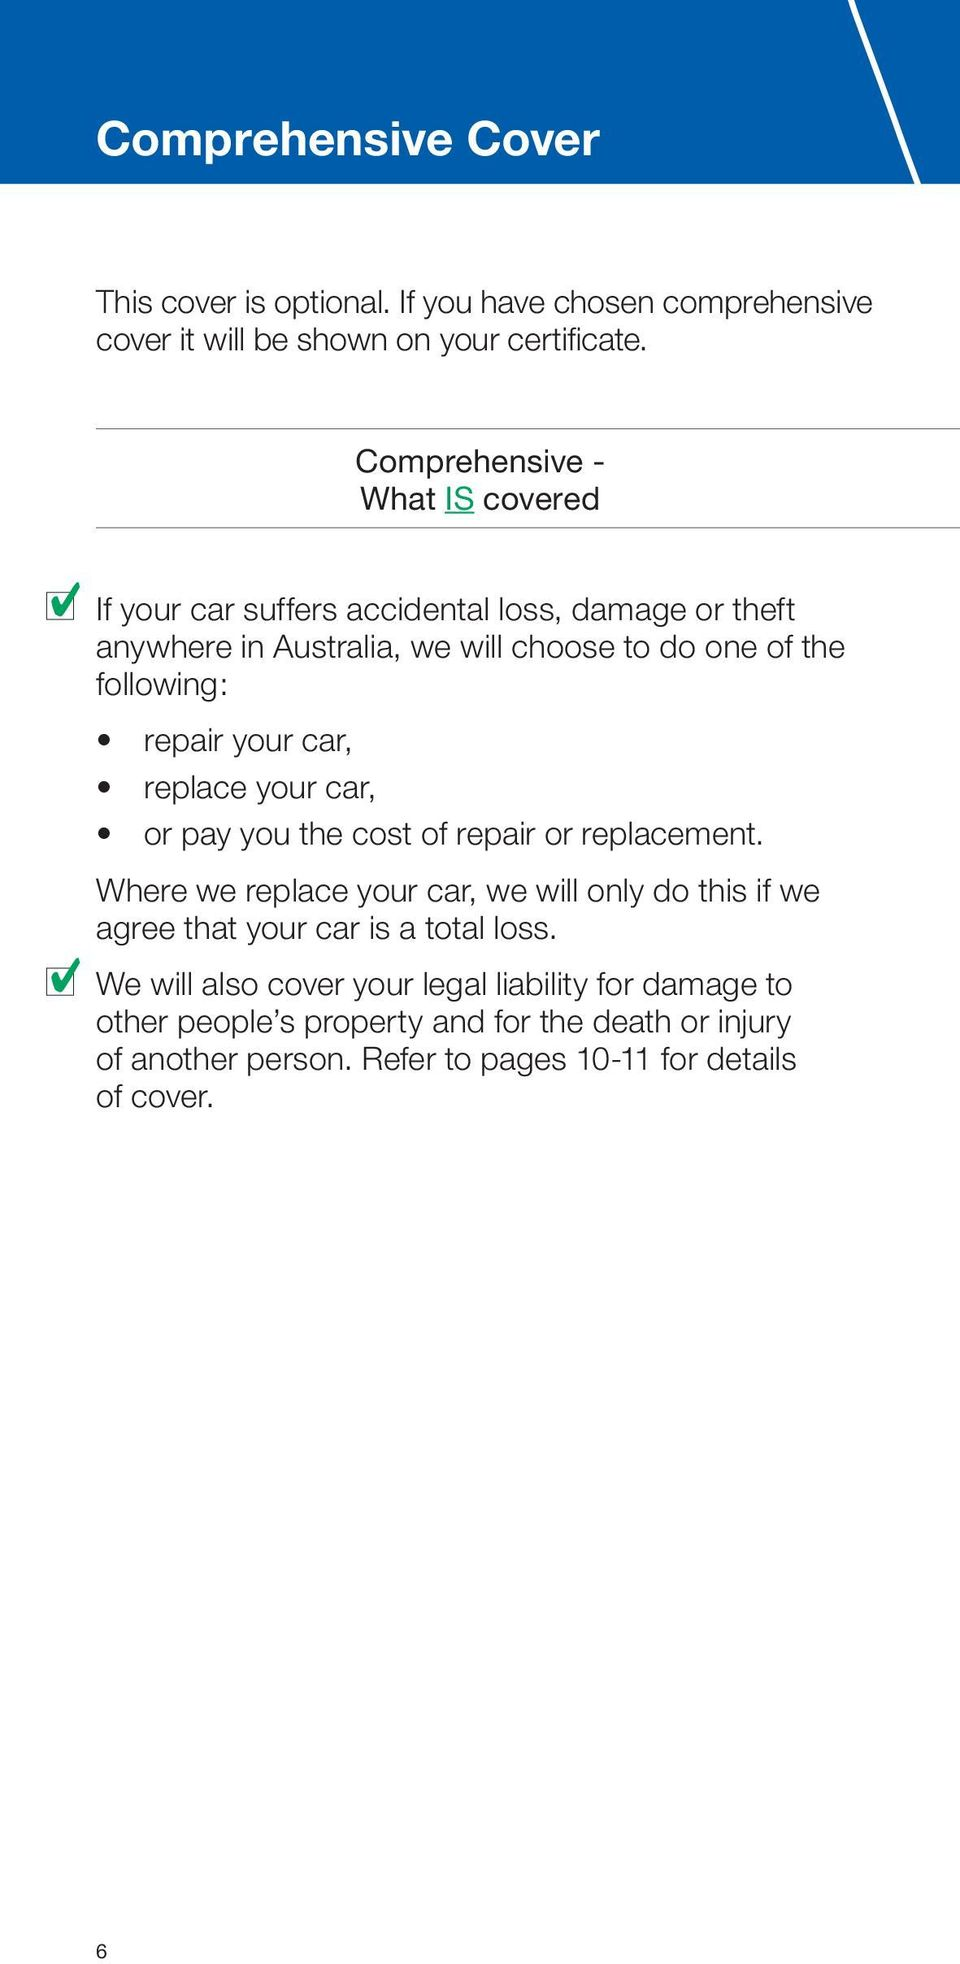 repair your car, replace your car, or pay you the cost of repair or replacement.